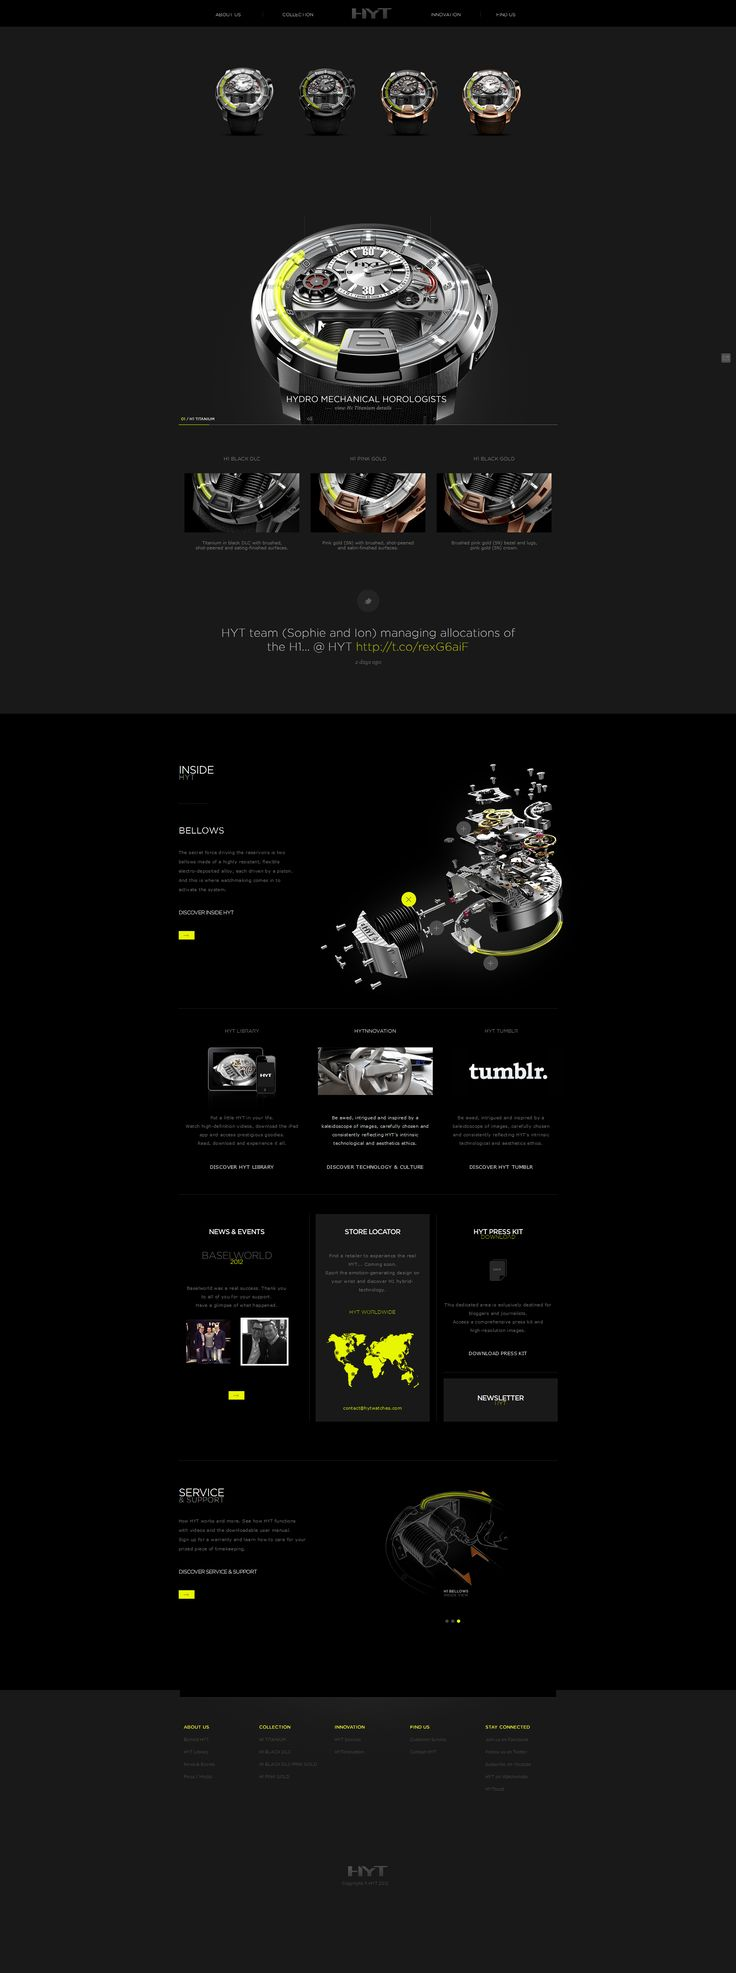 pinterest.com/fra411 #webdesign -I think the appeal of this site is 90% about how dam cool this watch is. The other 10% is easy when you have great diagrams and a slick accent color. Yeah Buddy!